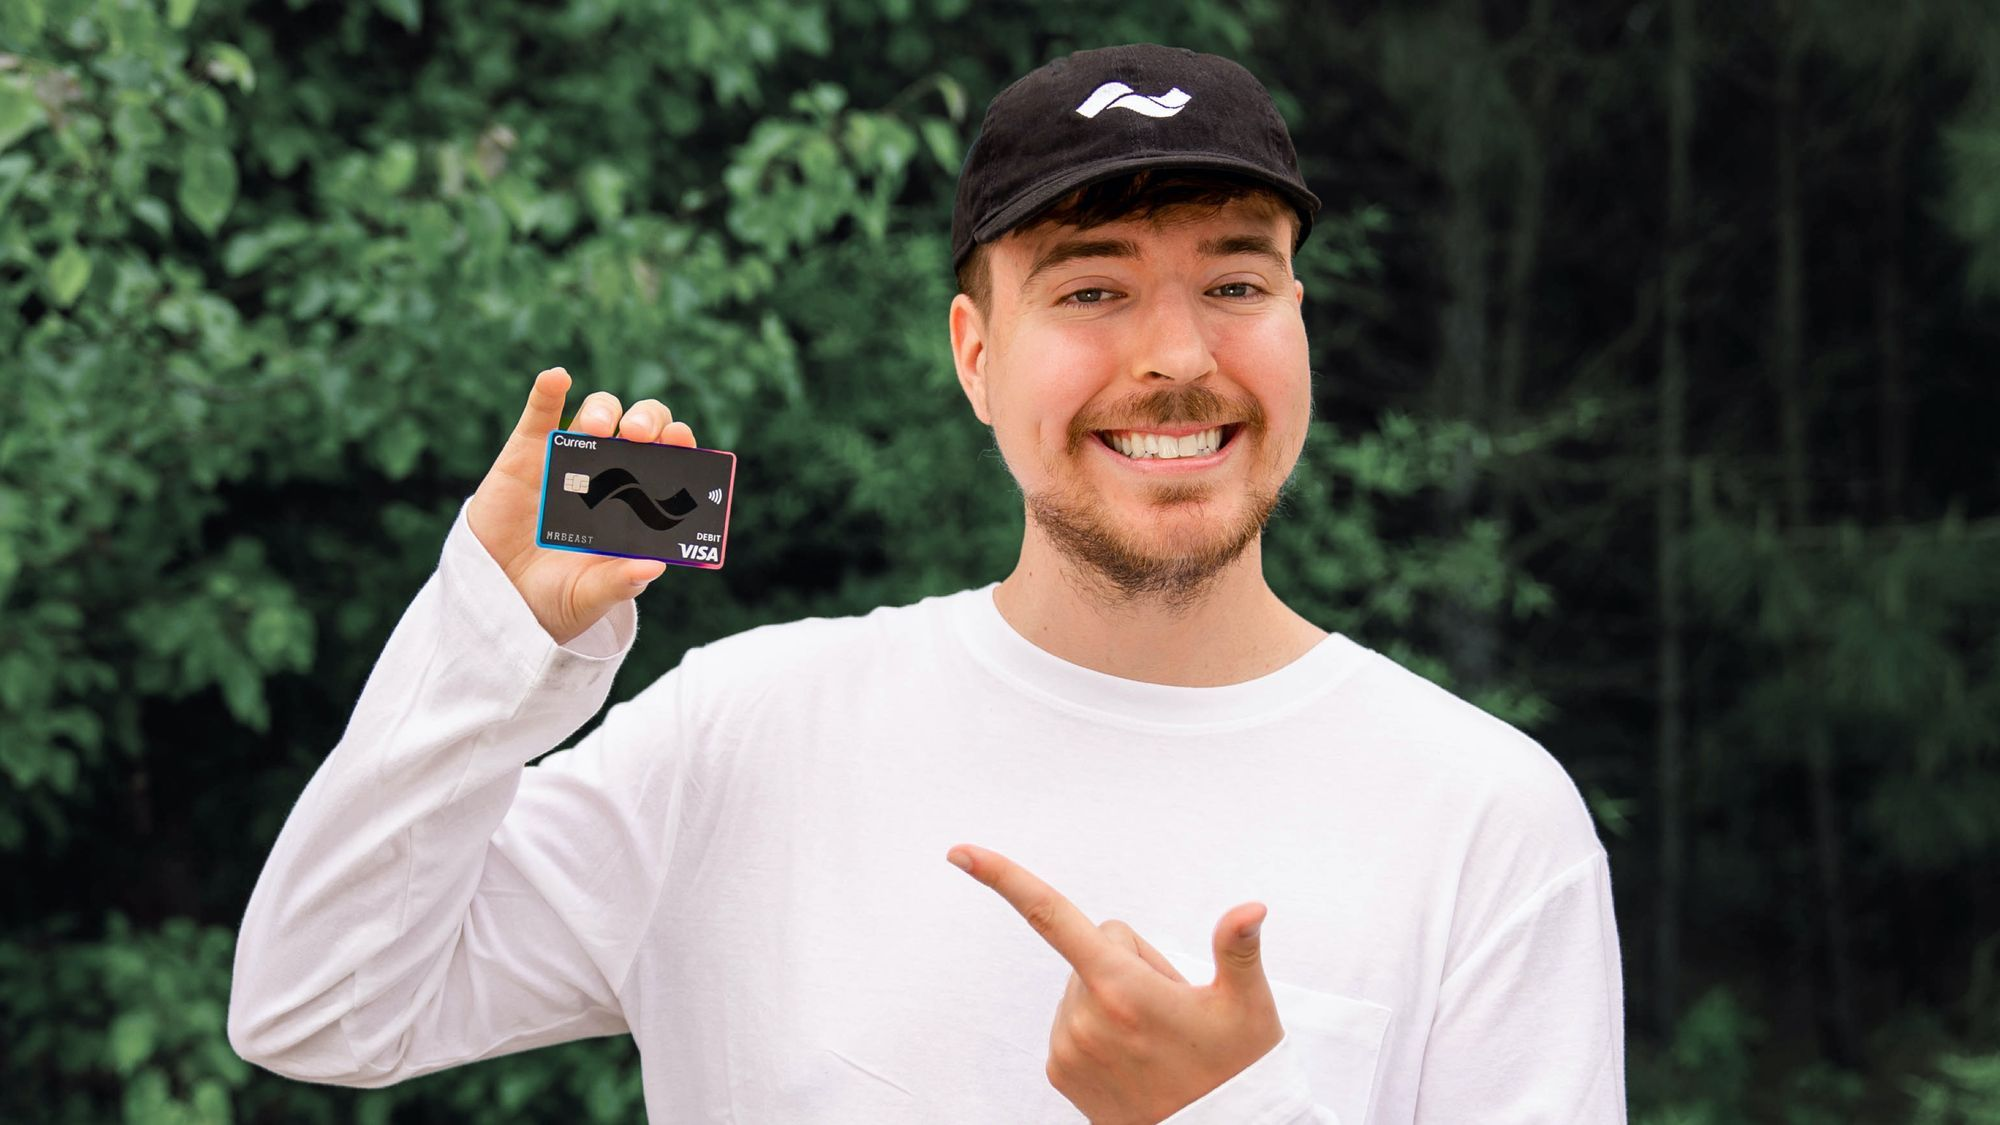 current-and-mrbeast-announce-exclusive-long-term-partnership-and-investment